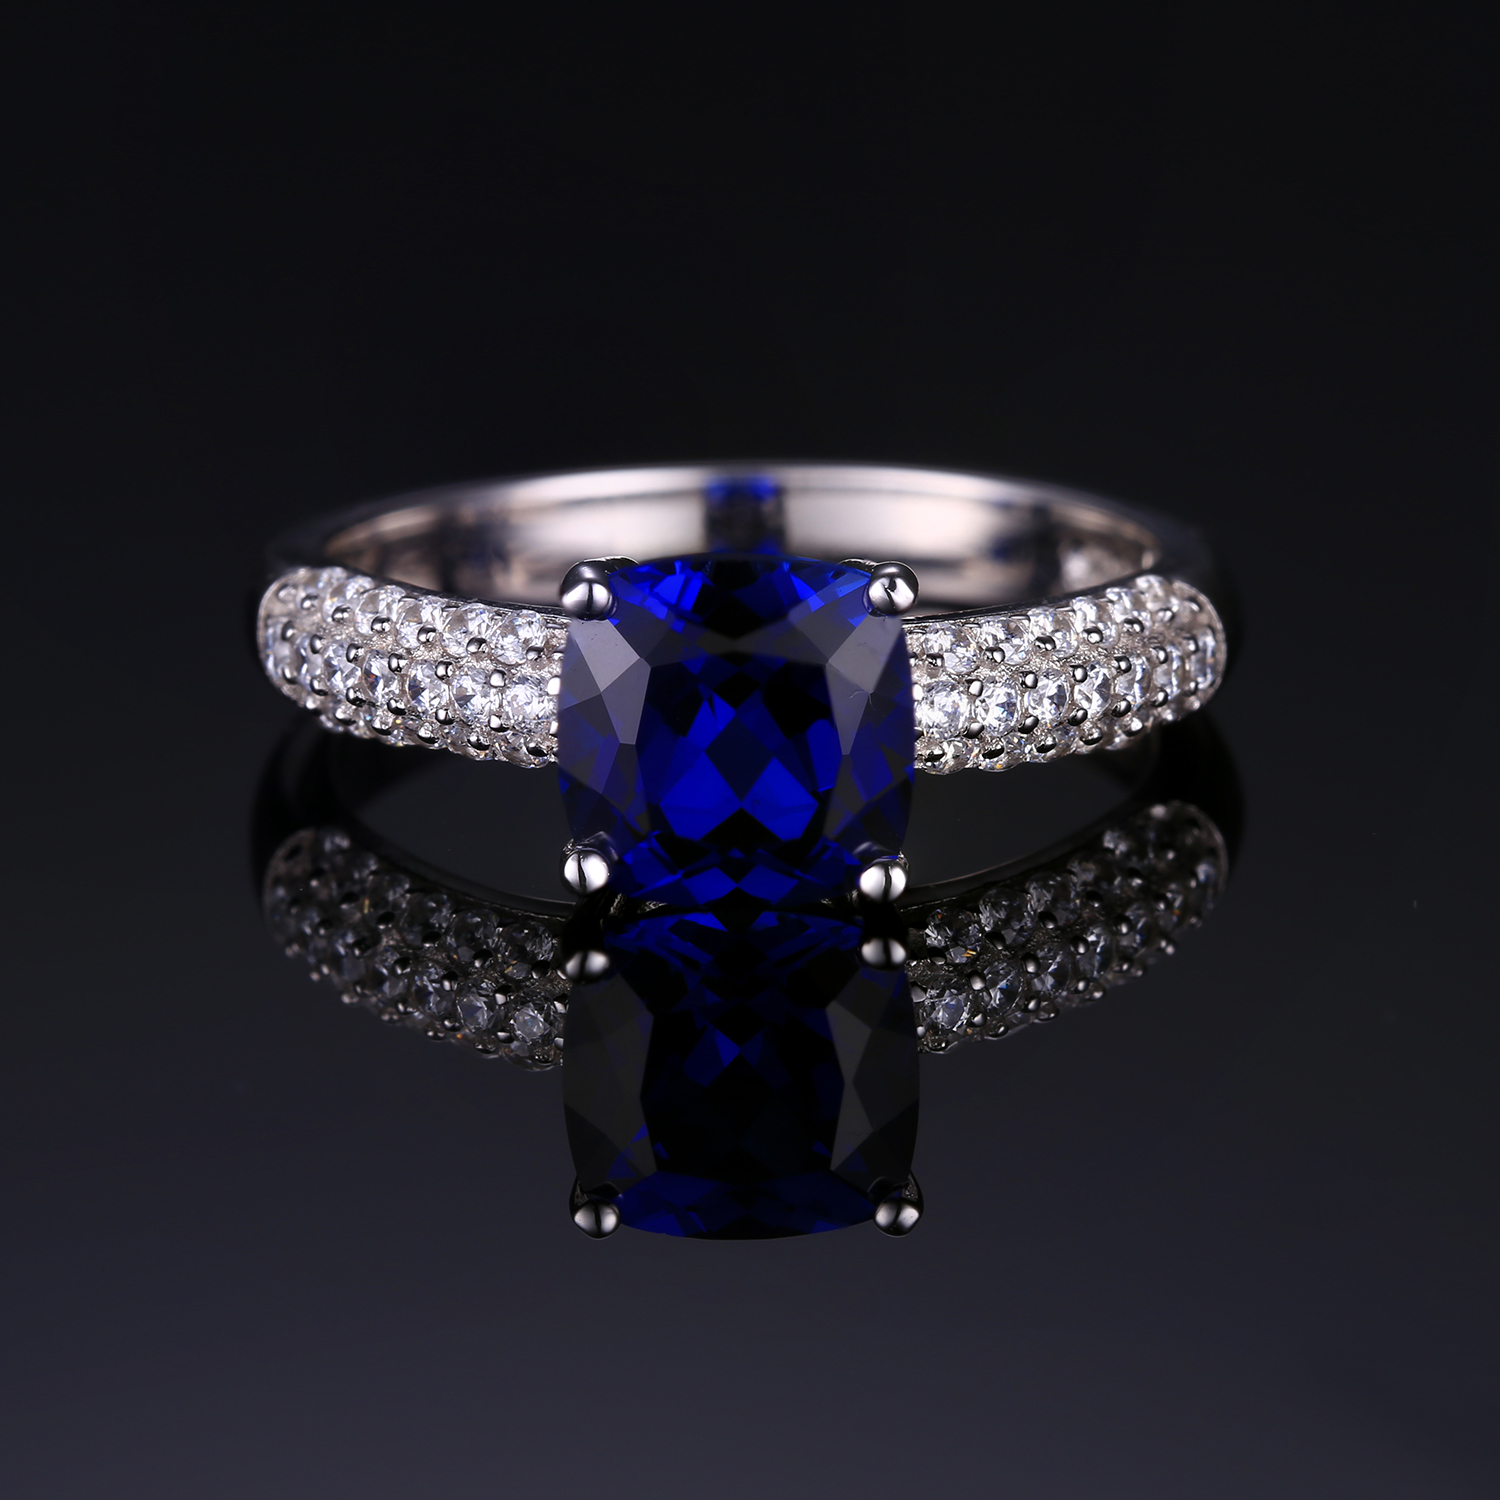 shop ctw metal floor set sapphire ring white emitter tapered round aqua stone solitaire render blue gold in engagement bezel light